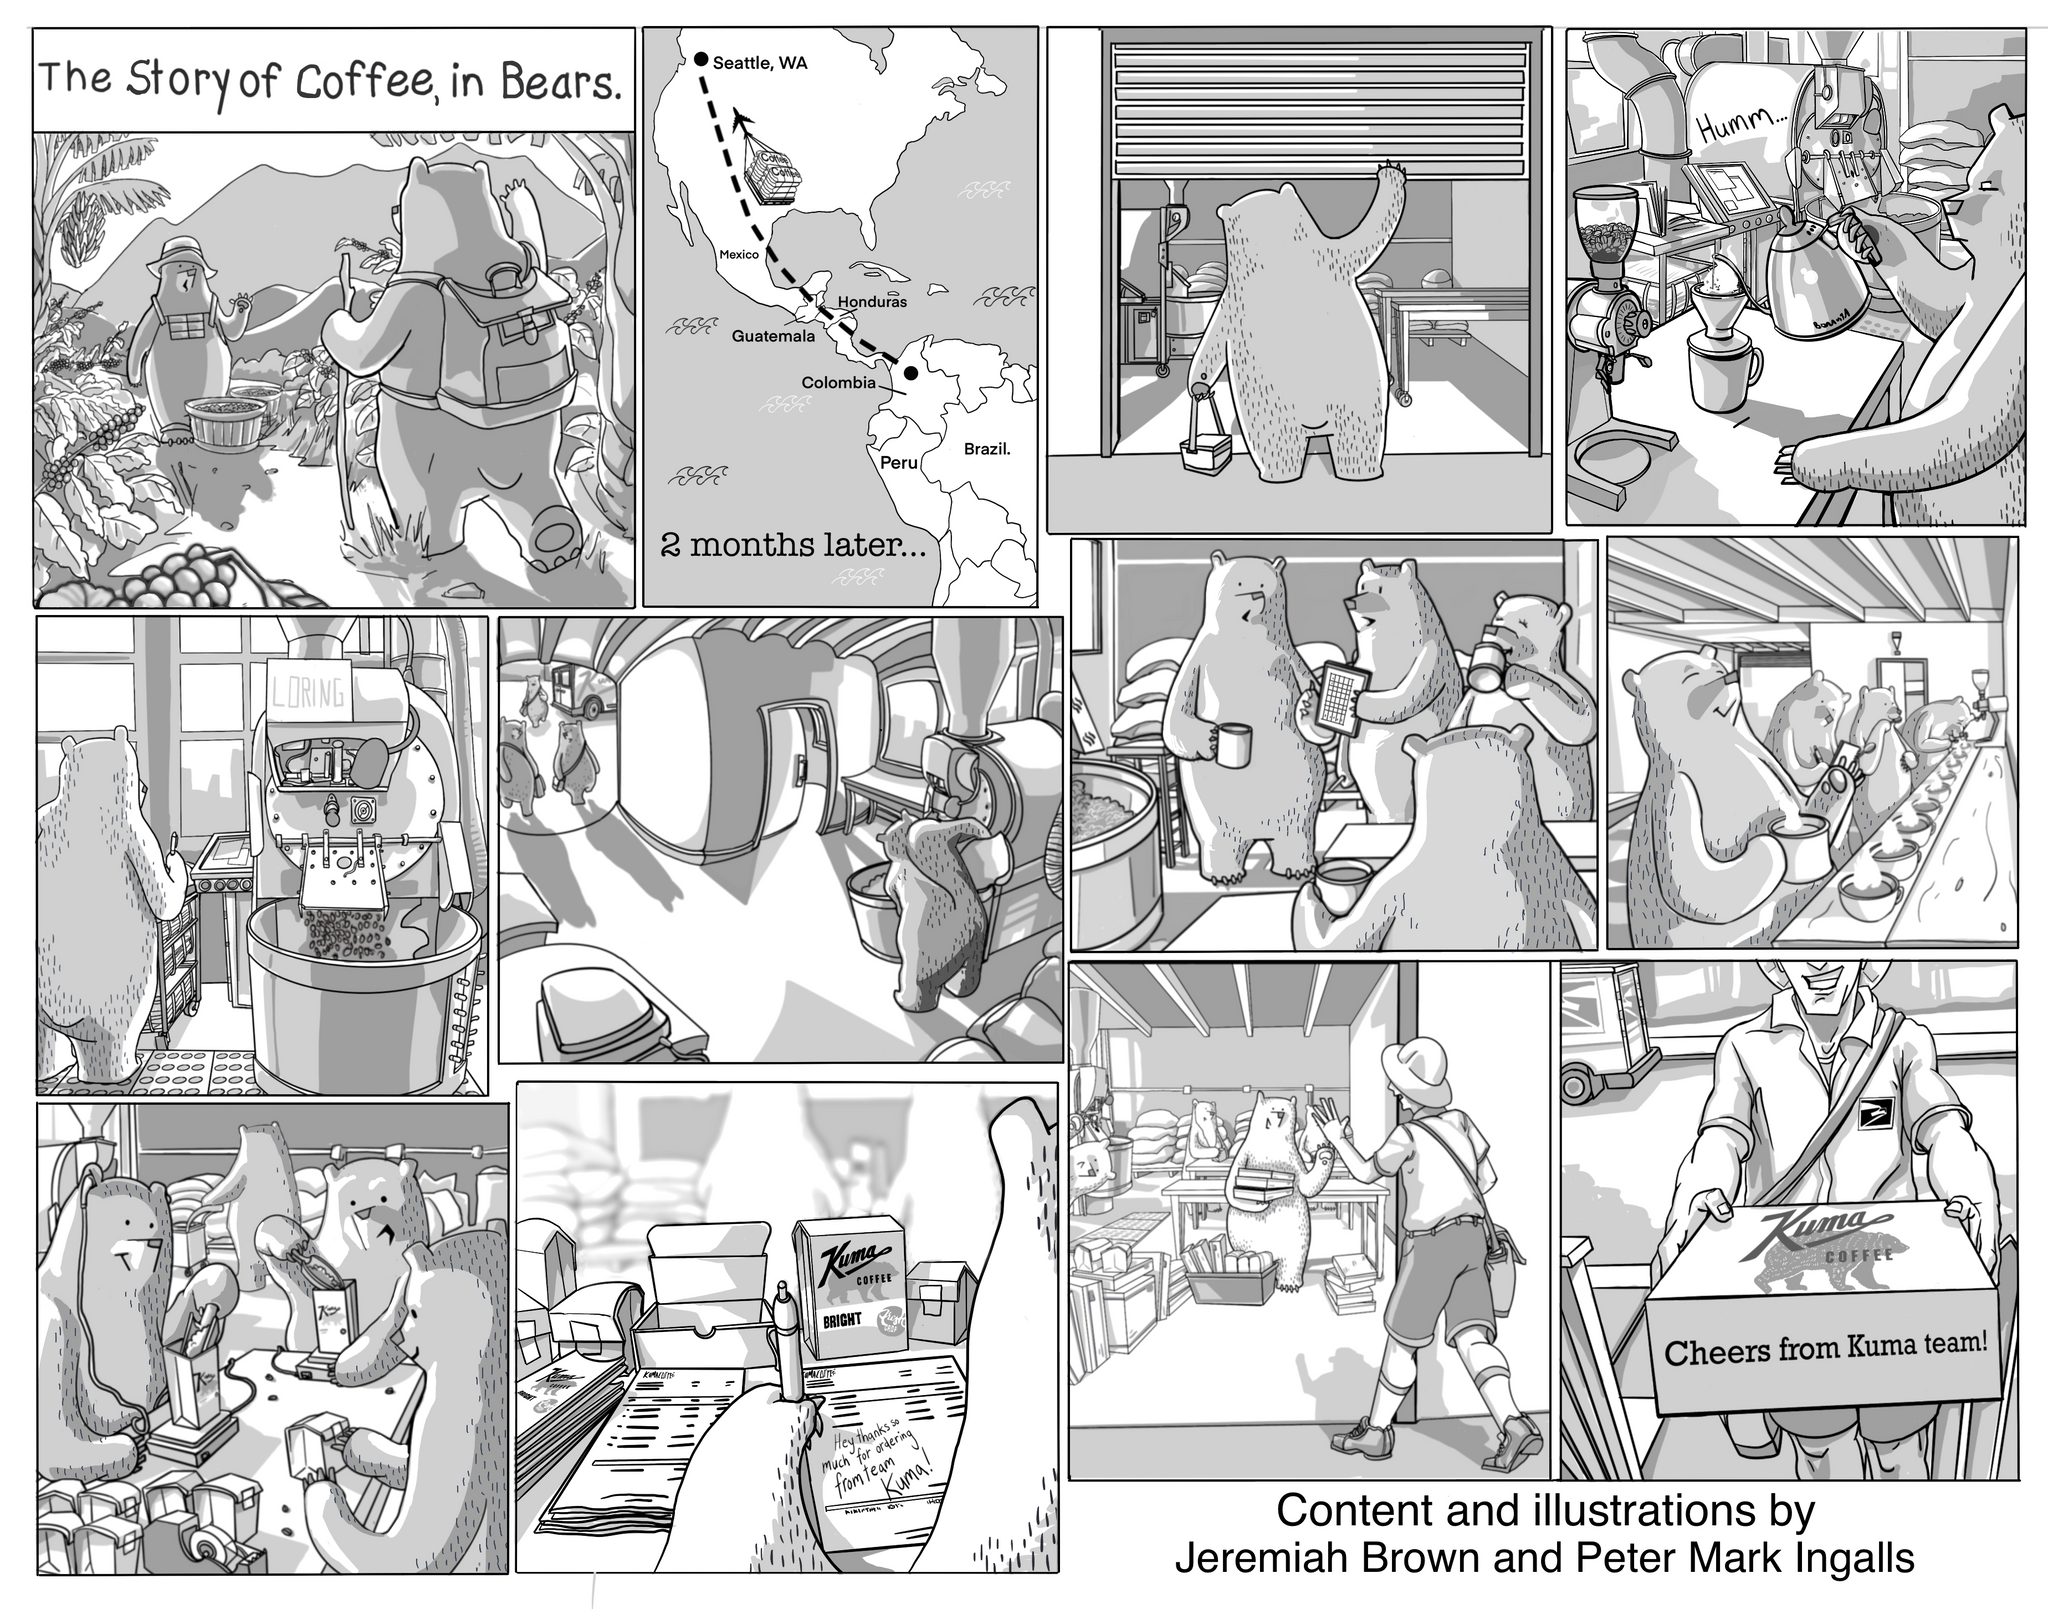 a hand drawn comic of the story of coffee, showing bear characters sourcing coffee, coffee shipping, scenes from a roastery where characters roast, pack and taste coffee. Finally the coffee going in a package and shipping with USPS to your home